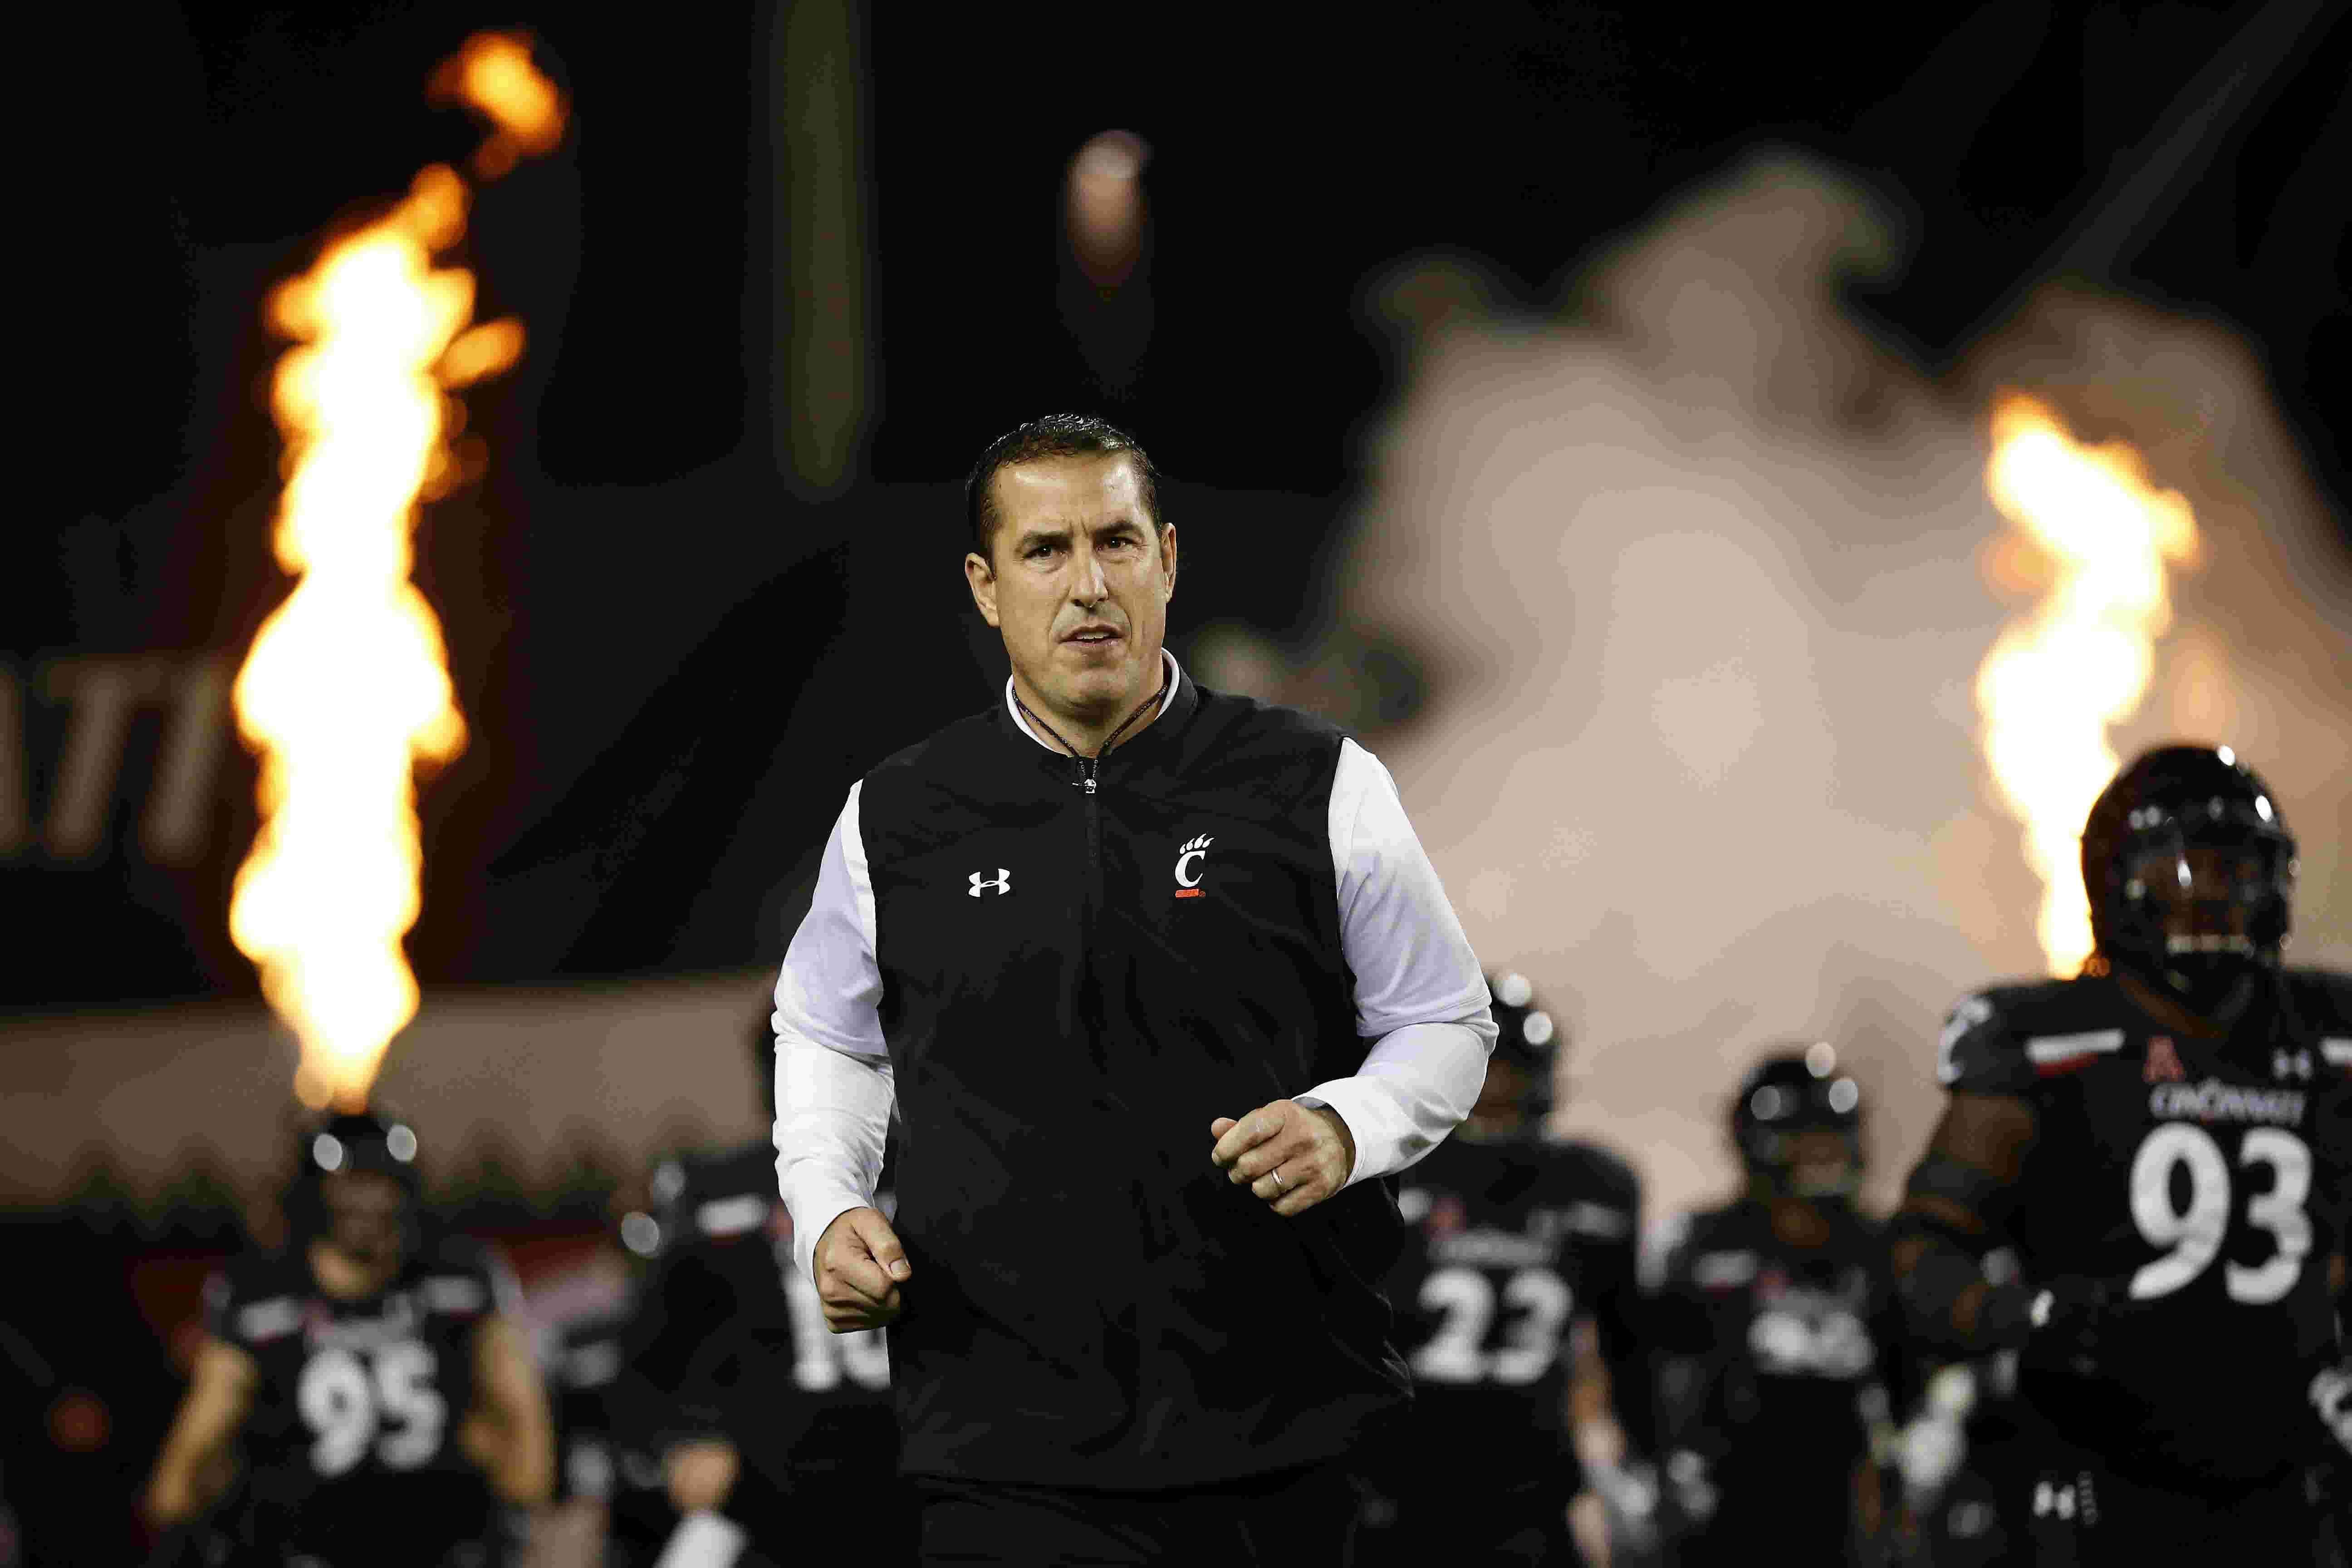 WATCH: UC coach Luke Fickell at Moeller Sports Stag on recent recruits keeping faith